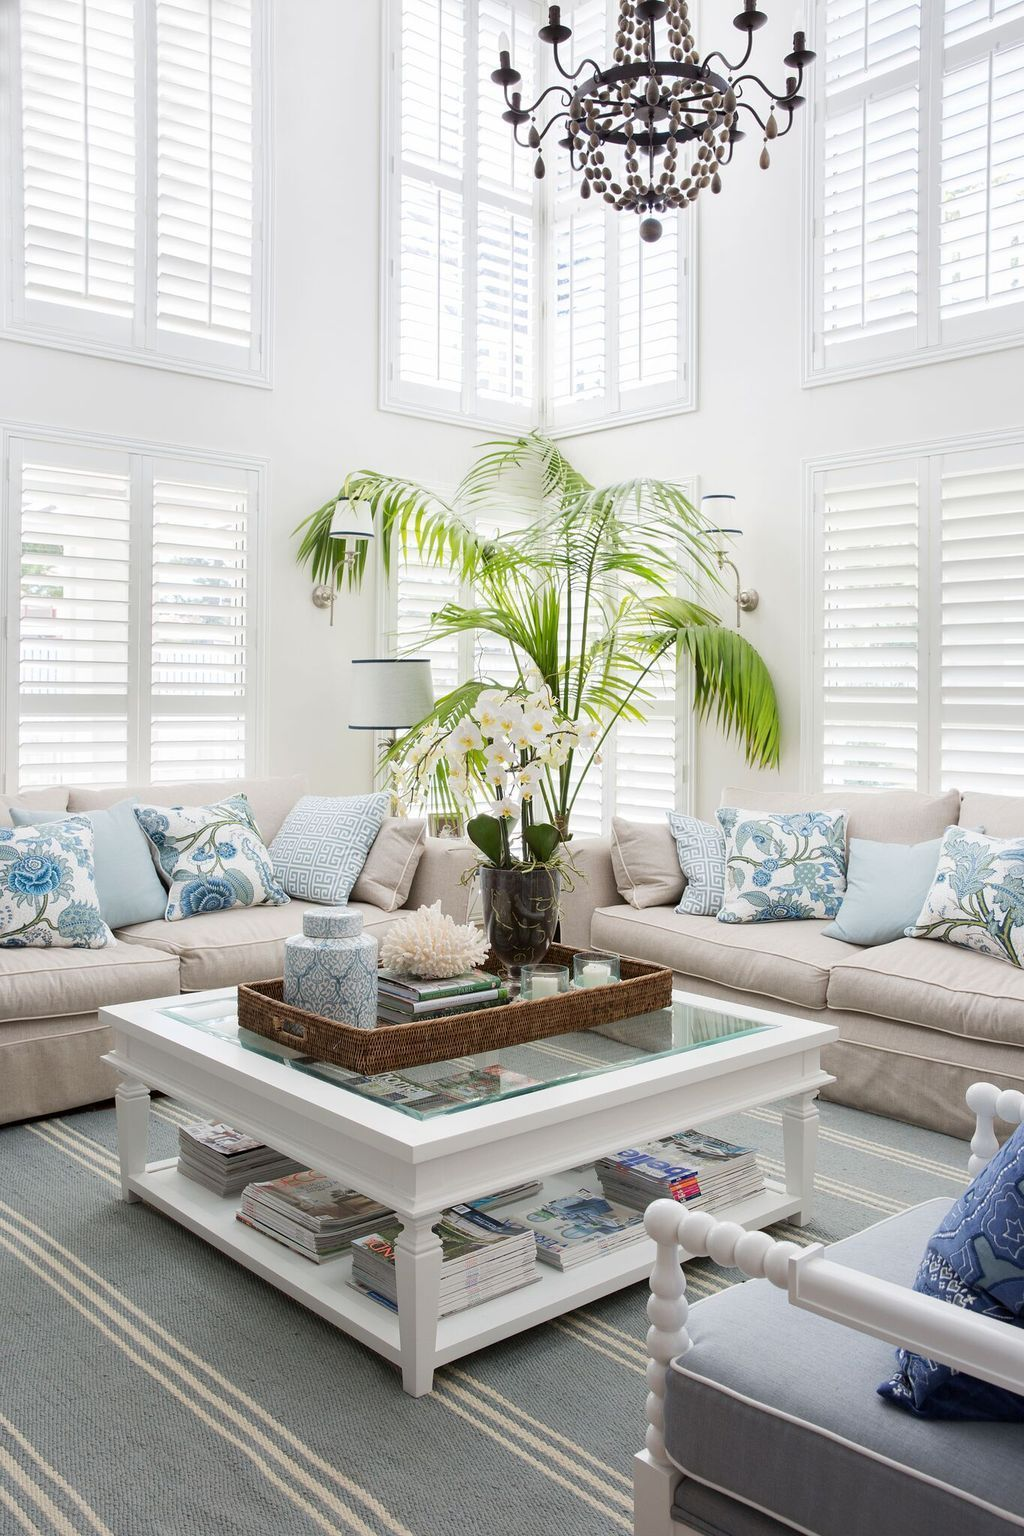 How To Add Hamptons Style To Your Home Newenglandcoastaldecor Hamptons Style Living Room Coastal Decorating Living Room Coastal Living Rooms